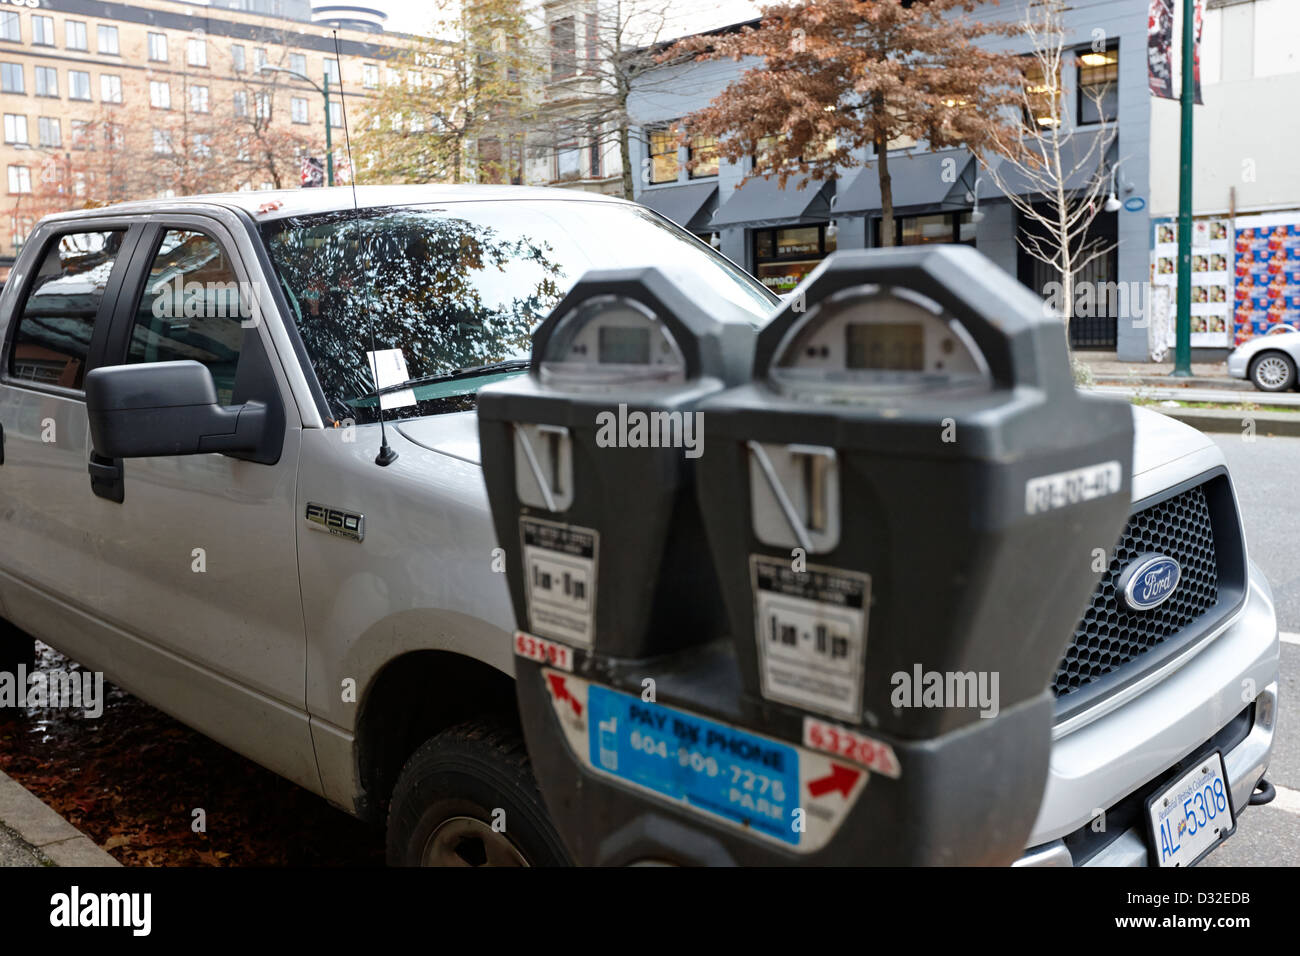 vehicle with parking ticket parked onstreet beside expired parking meter Vancouver BC Canada - Stock Image